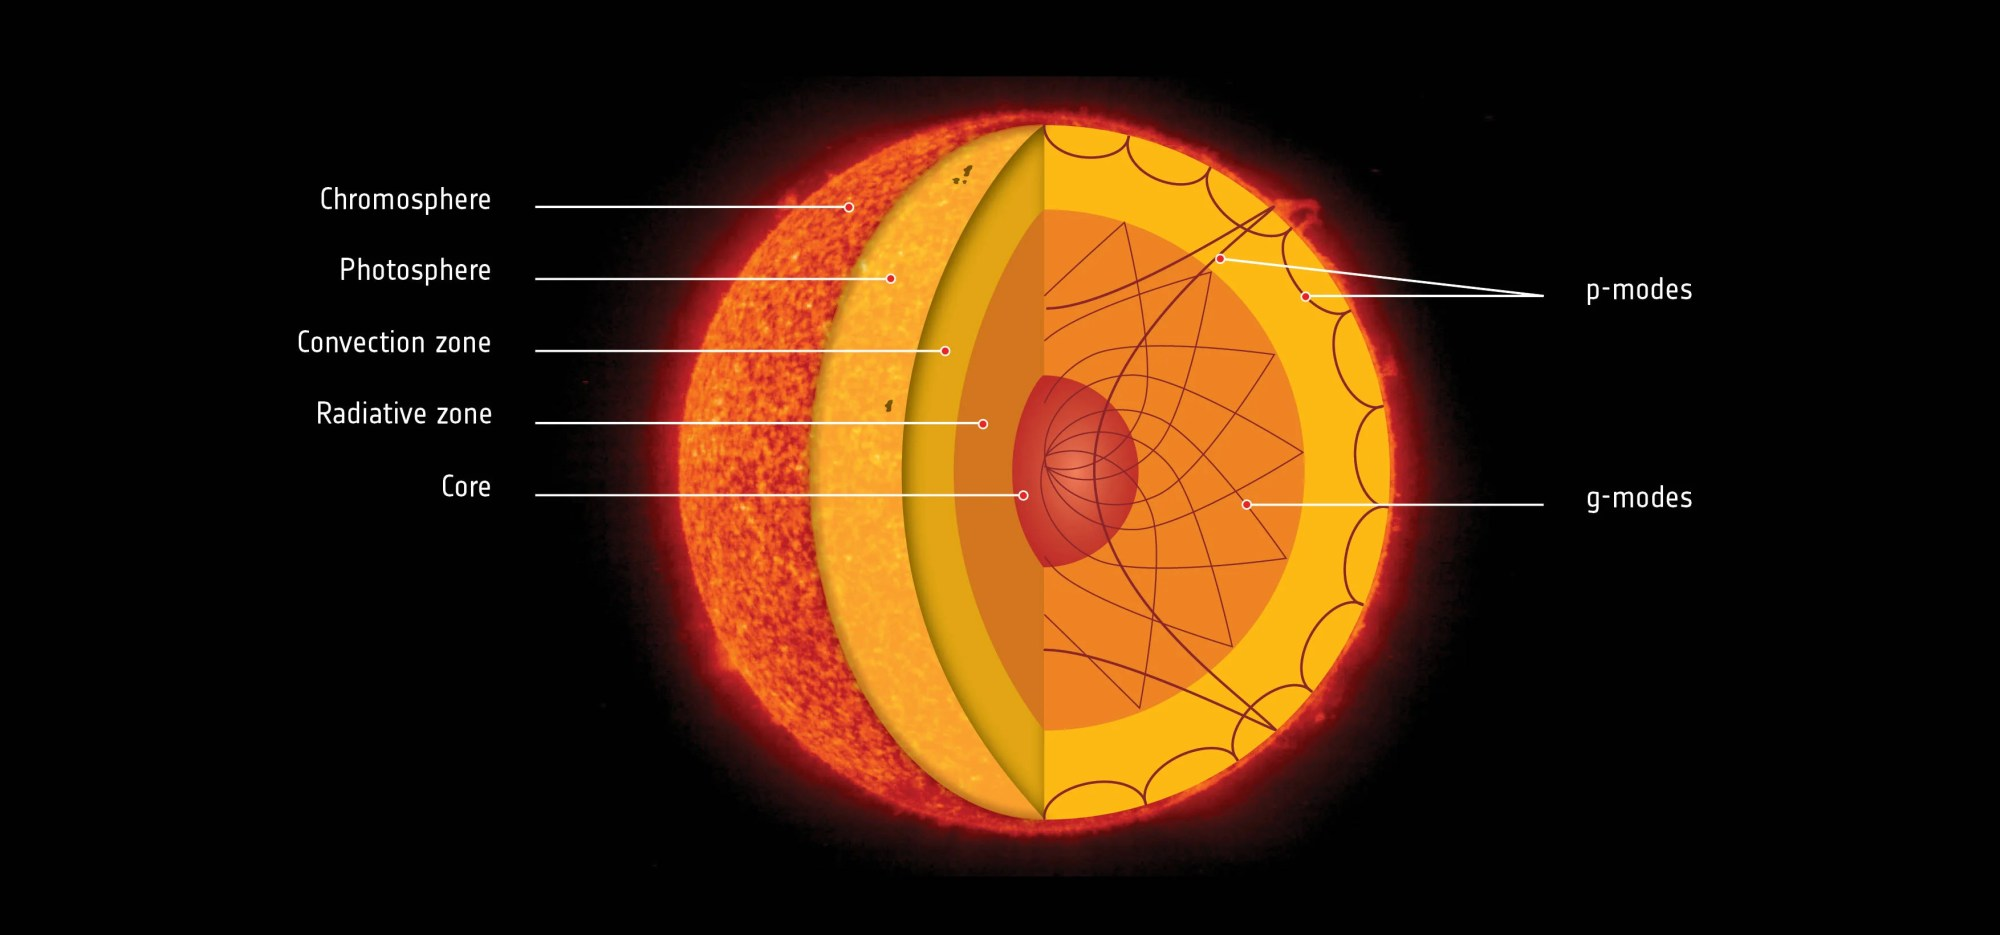 hight resolution of sun s core in a real spin but you wouldn t know just by looking at sun path diagram real sun diagram